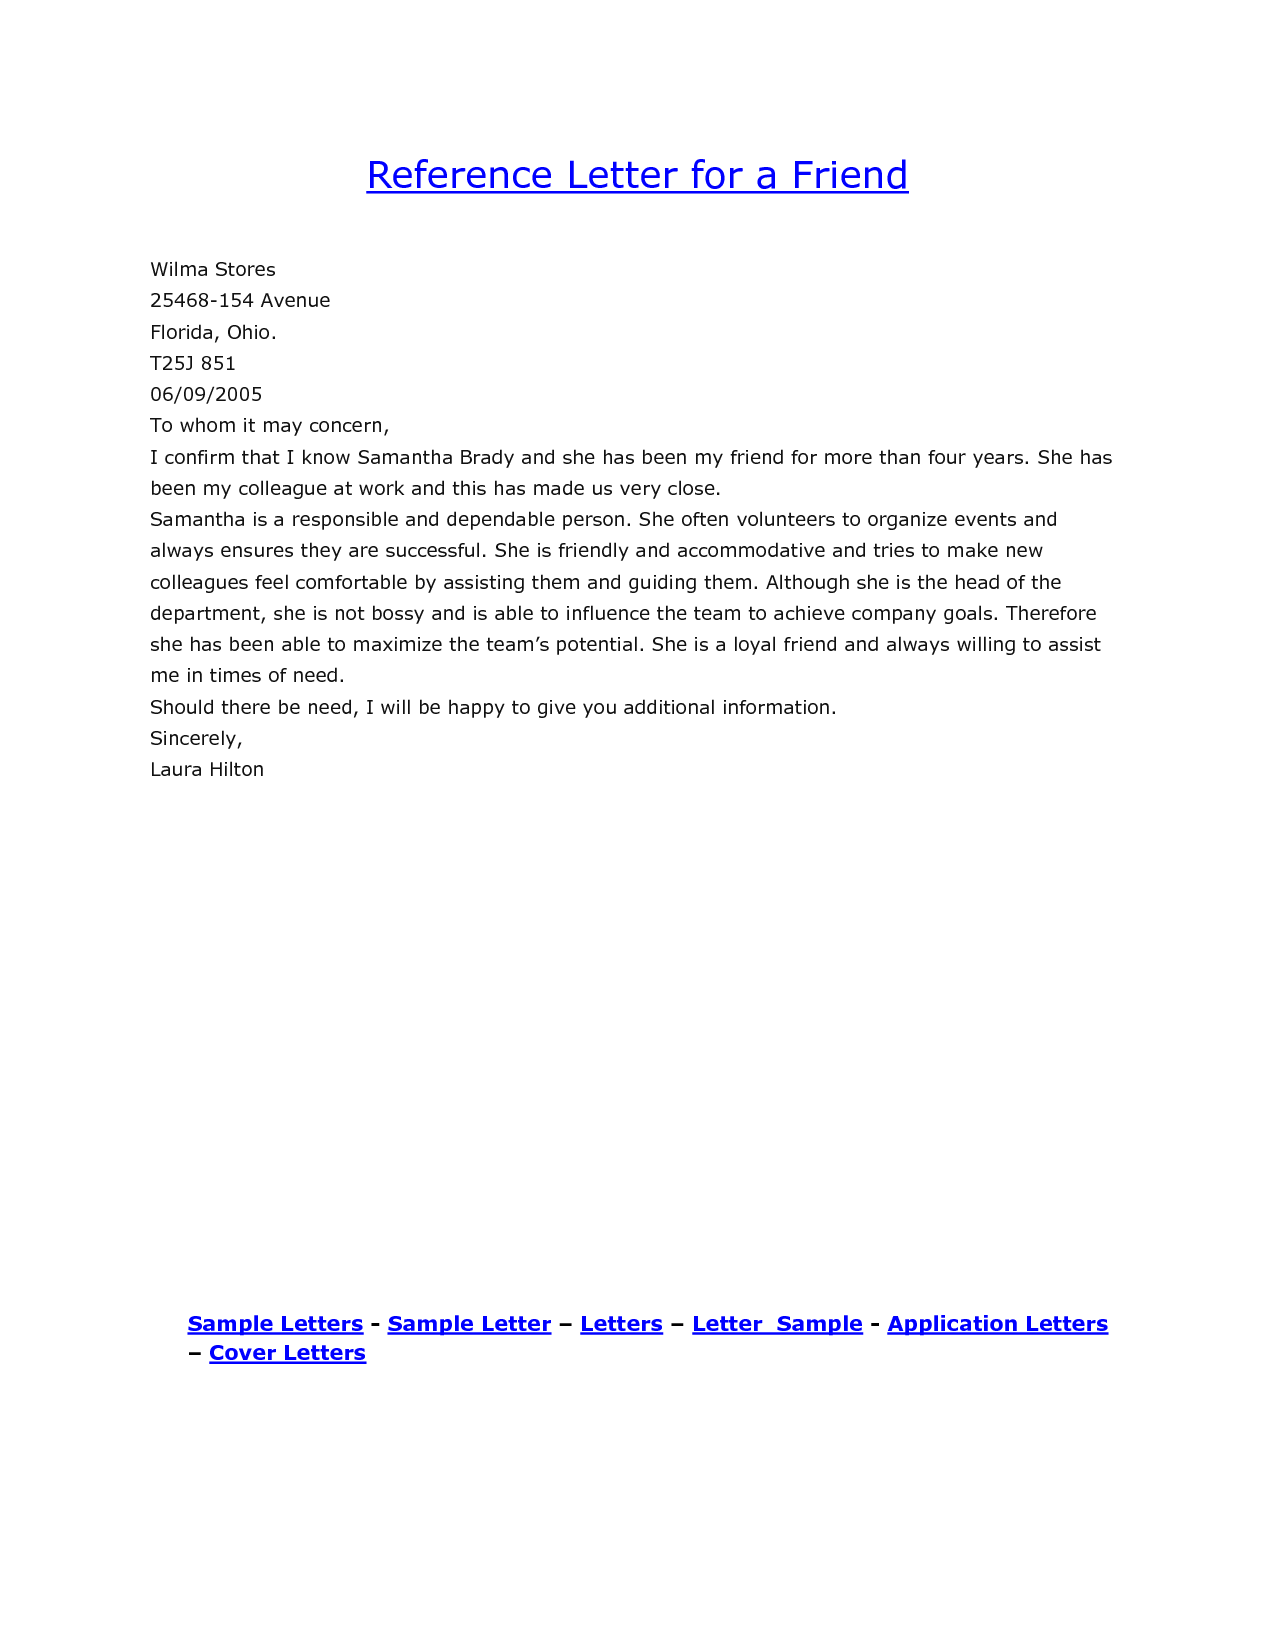 Sample Reference Letter For A Close Friend Cover Letter Examples